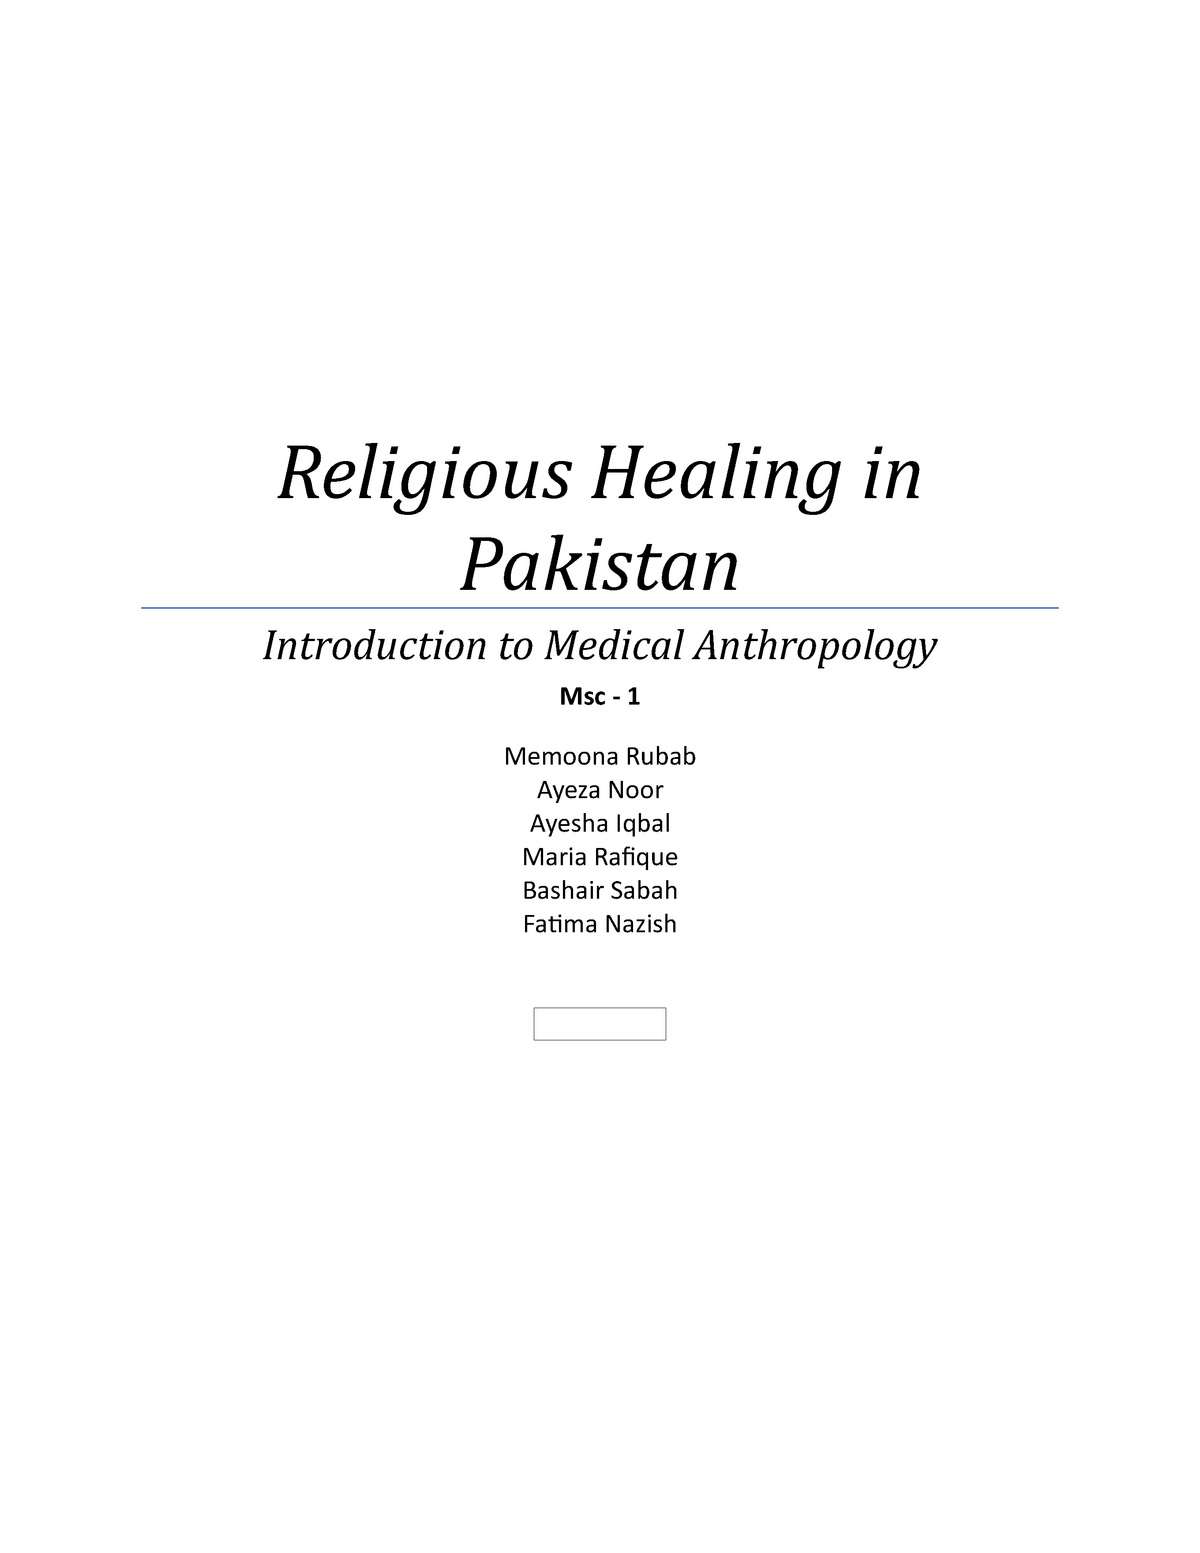 Religious Healing in Pakistan - Write-Up - Social Change